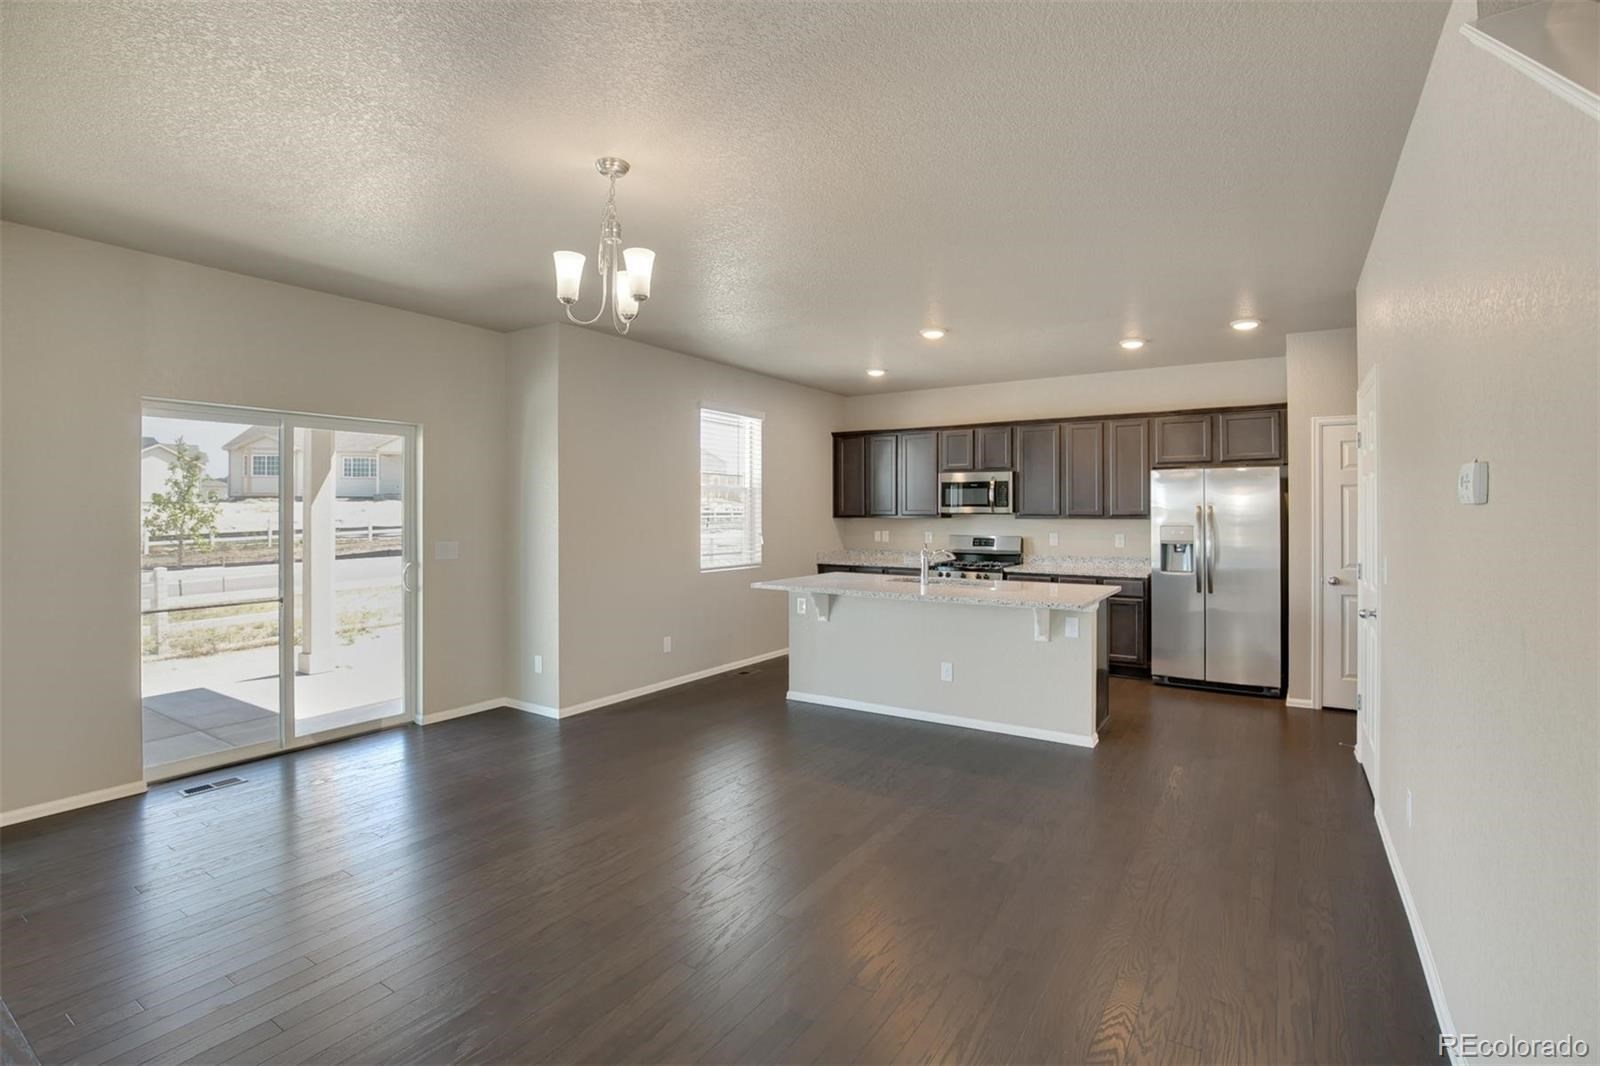 MLS# 4867430 - 3 - 915 Camberly Drive, Windsor, CO 80550